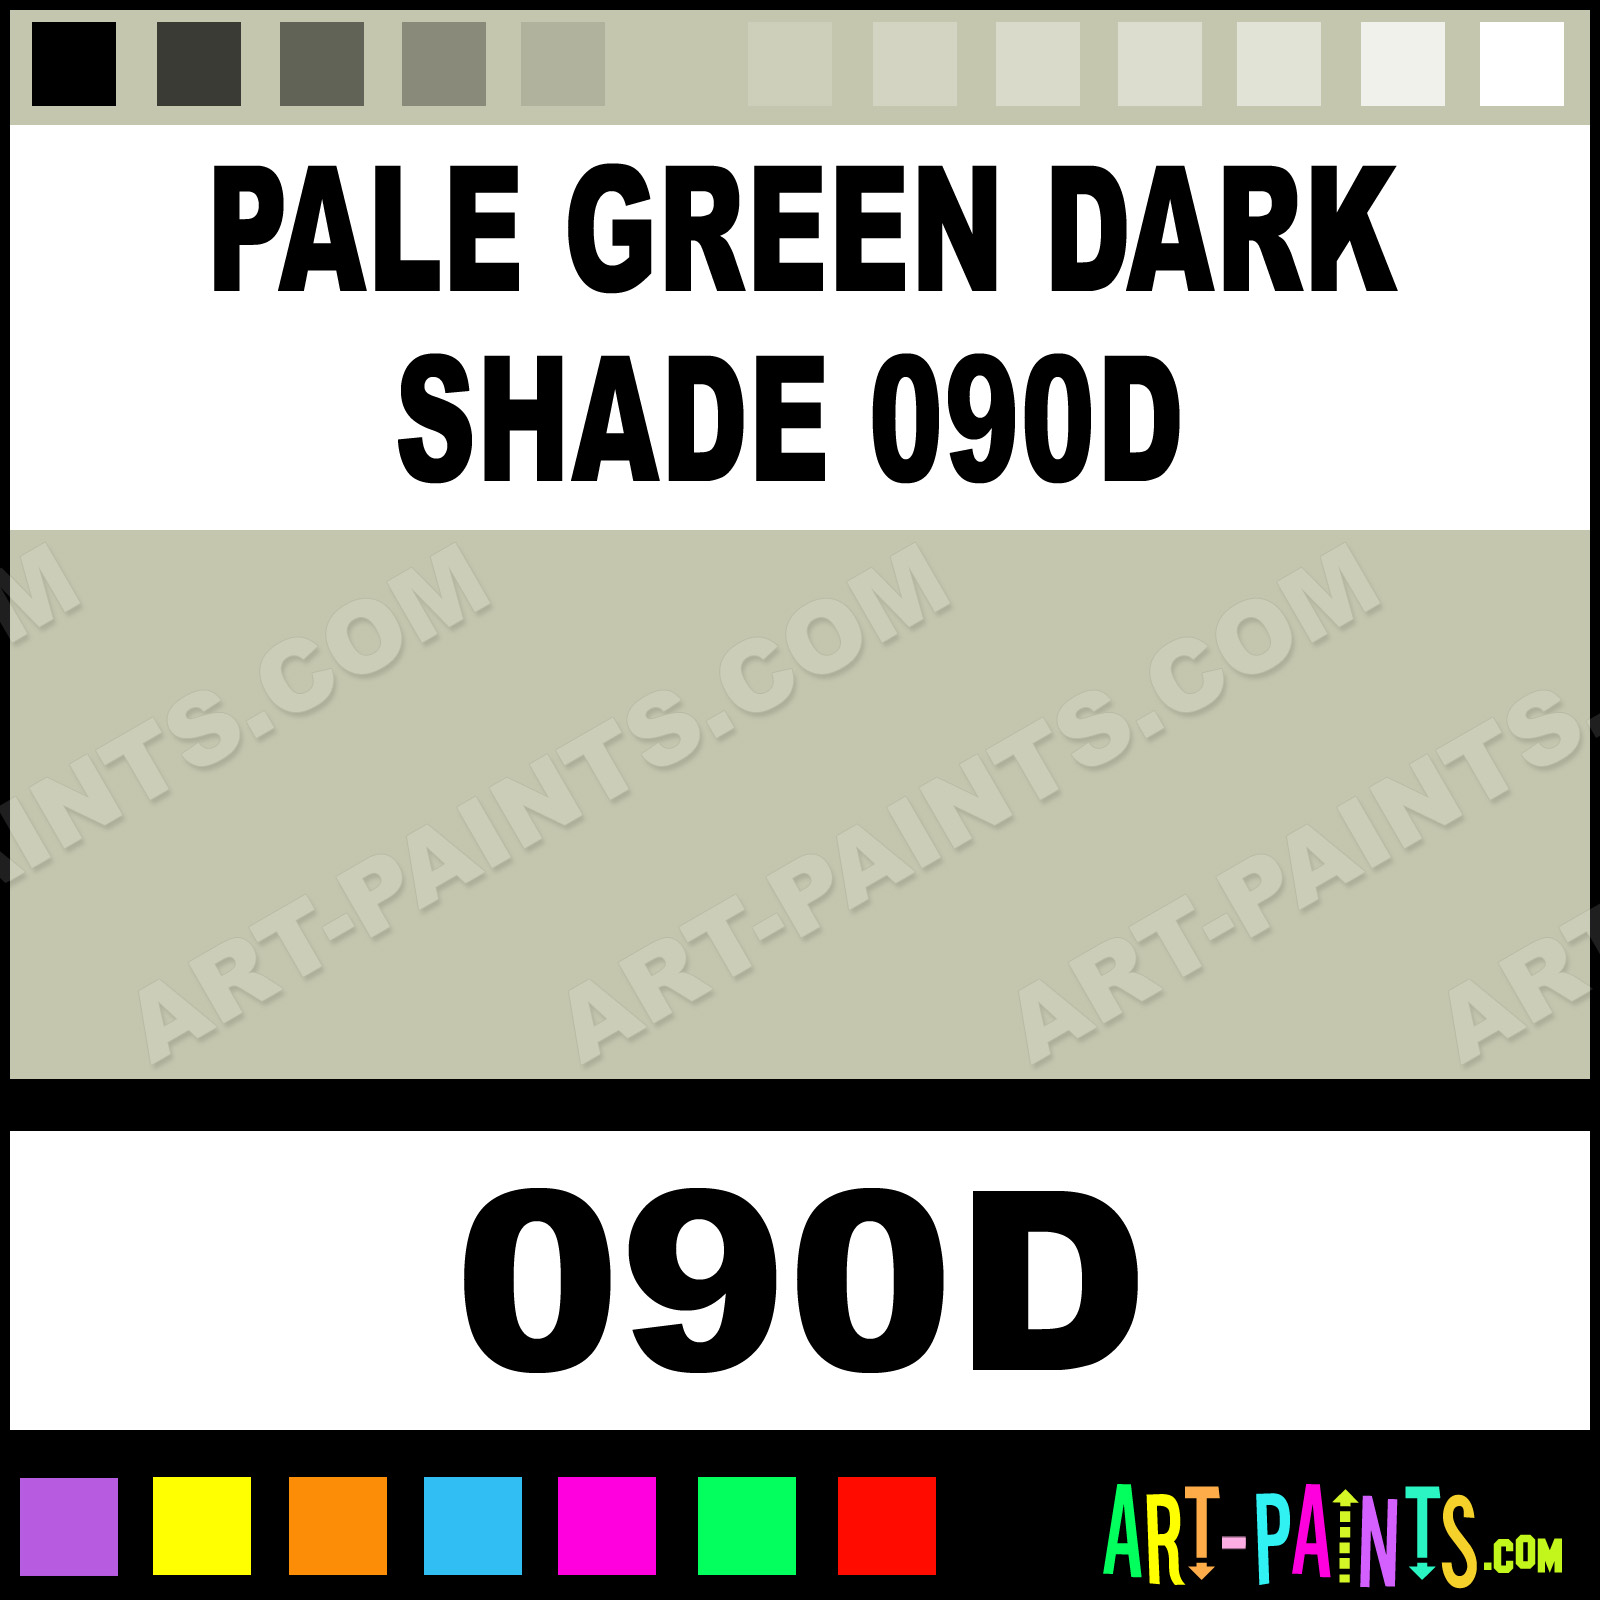 Pale Green Dark Shade 090d